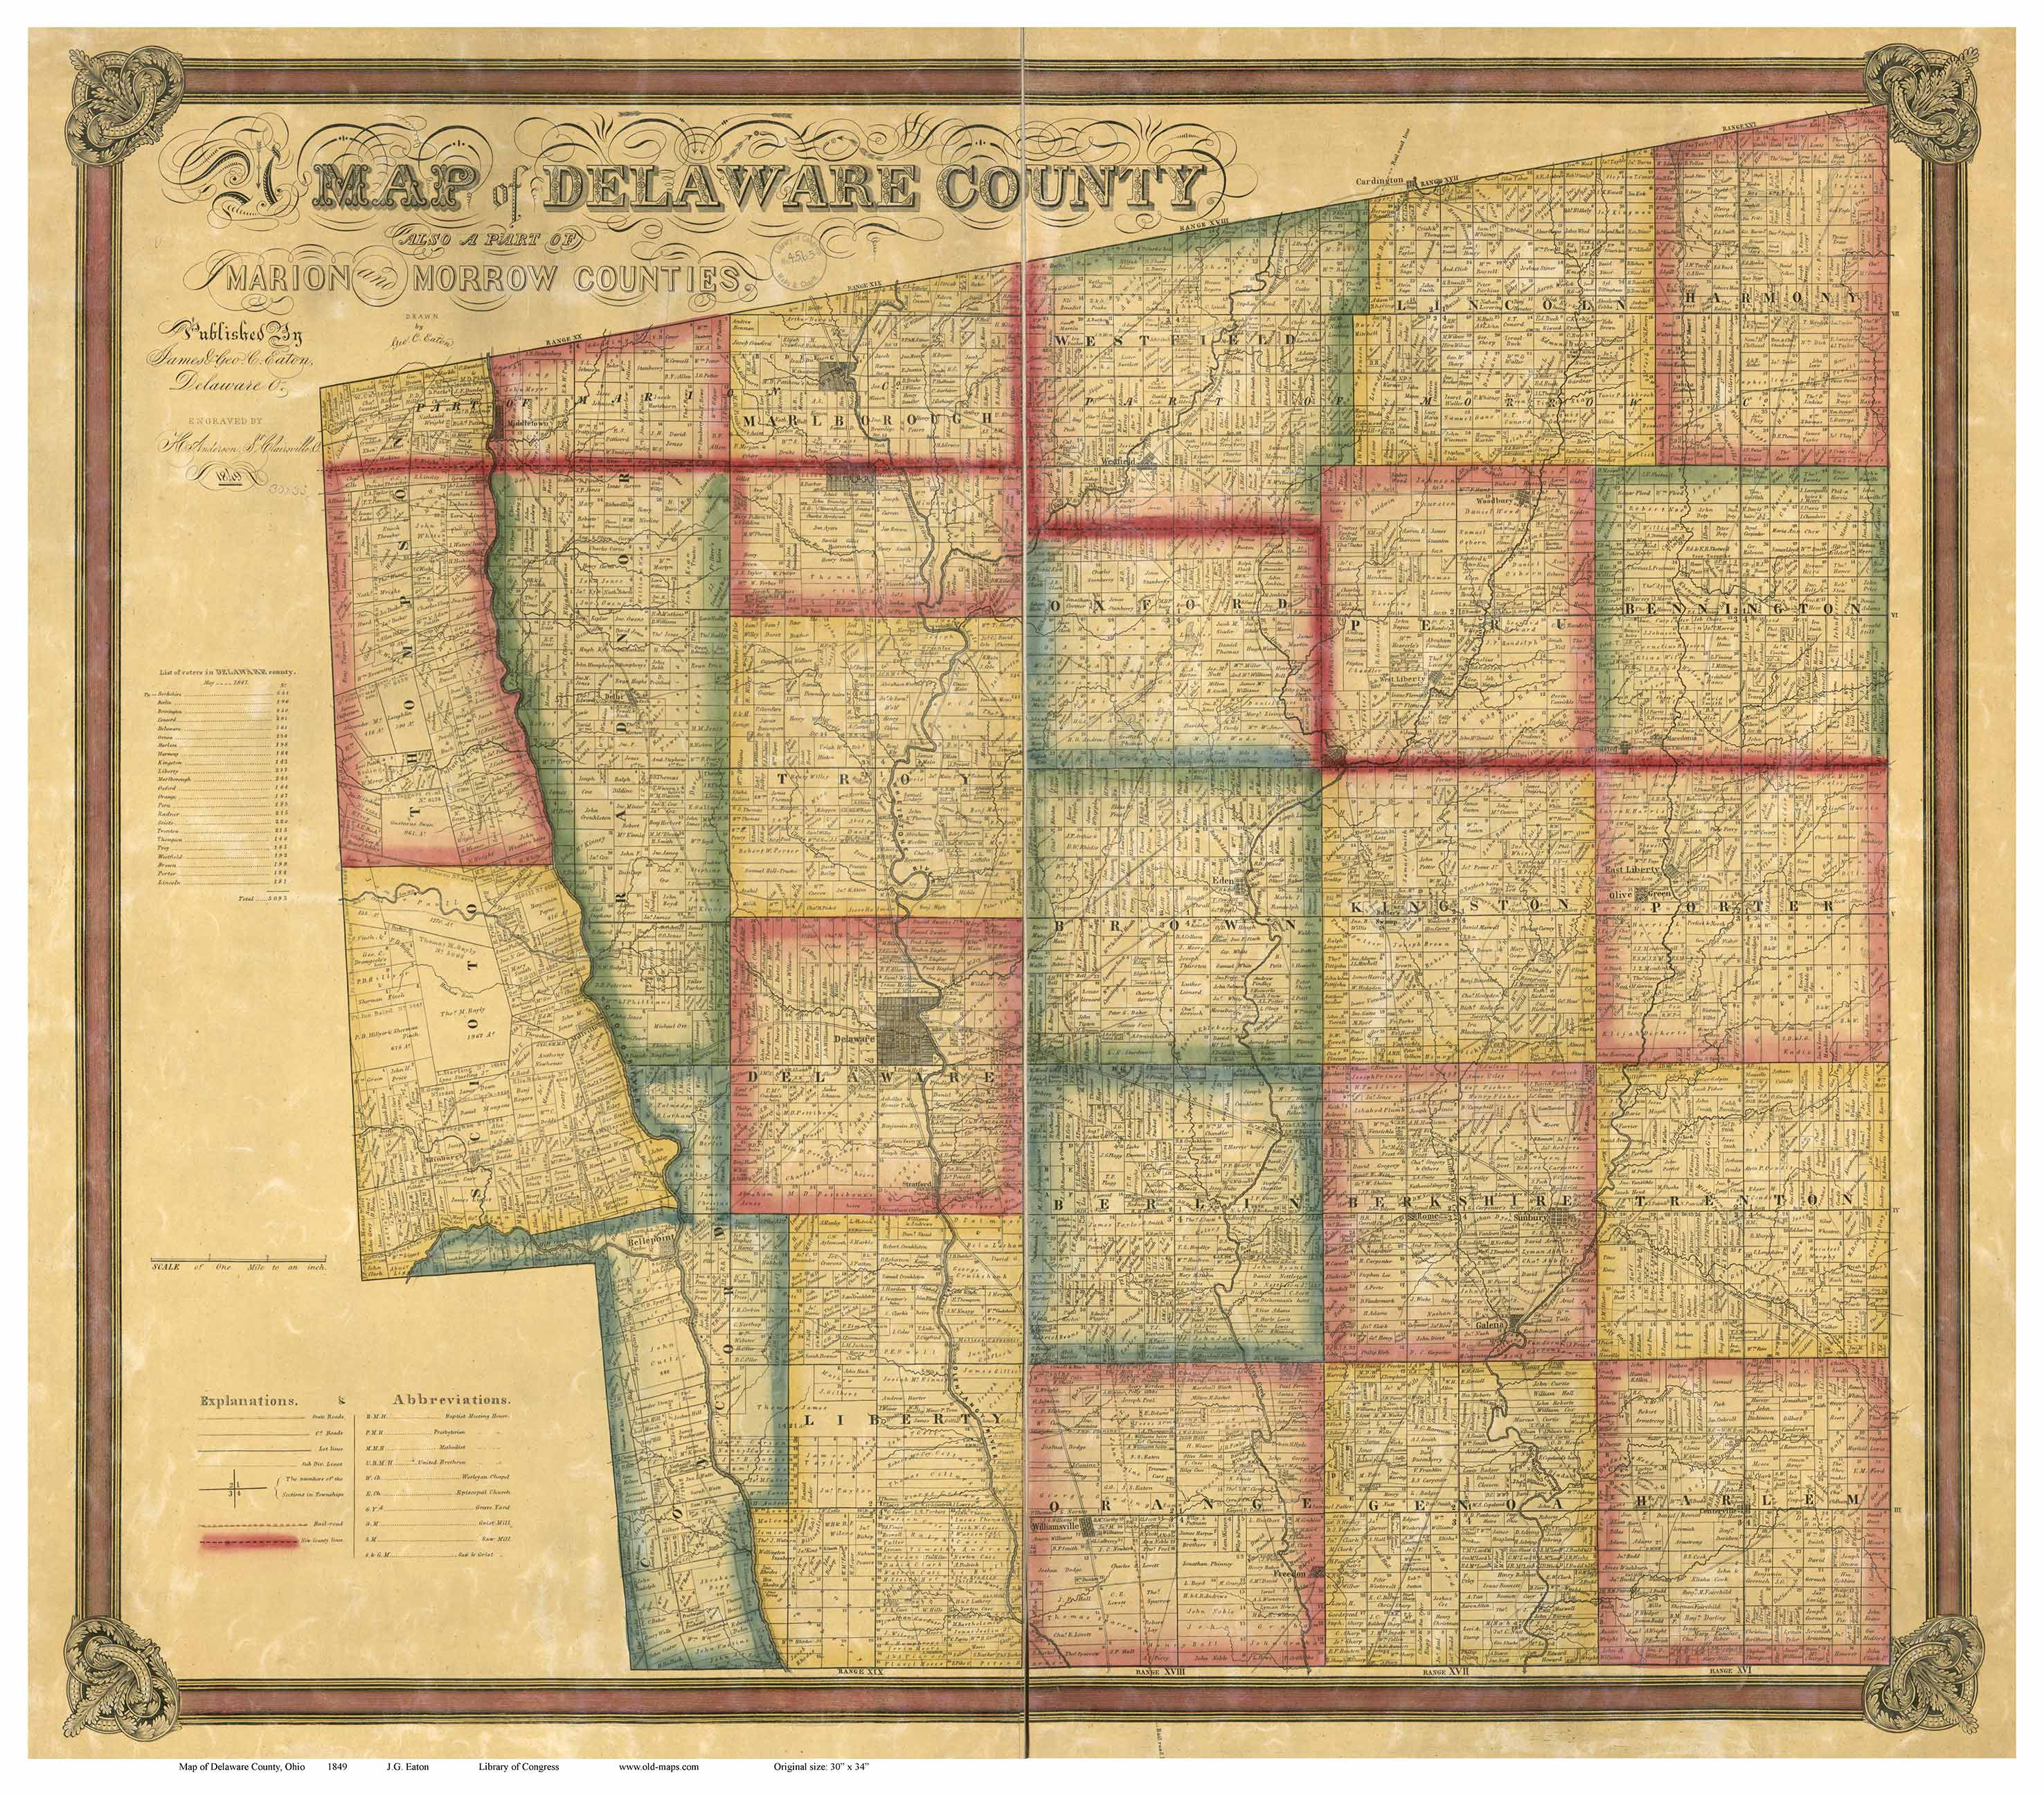 Delaware County Ohio 1849 Old Map Reprint Old Maps